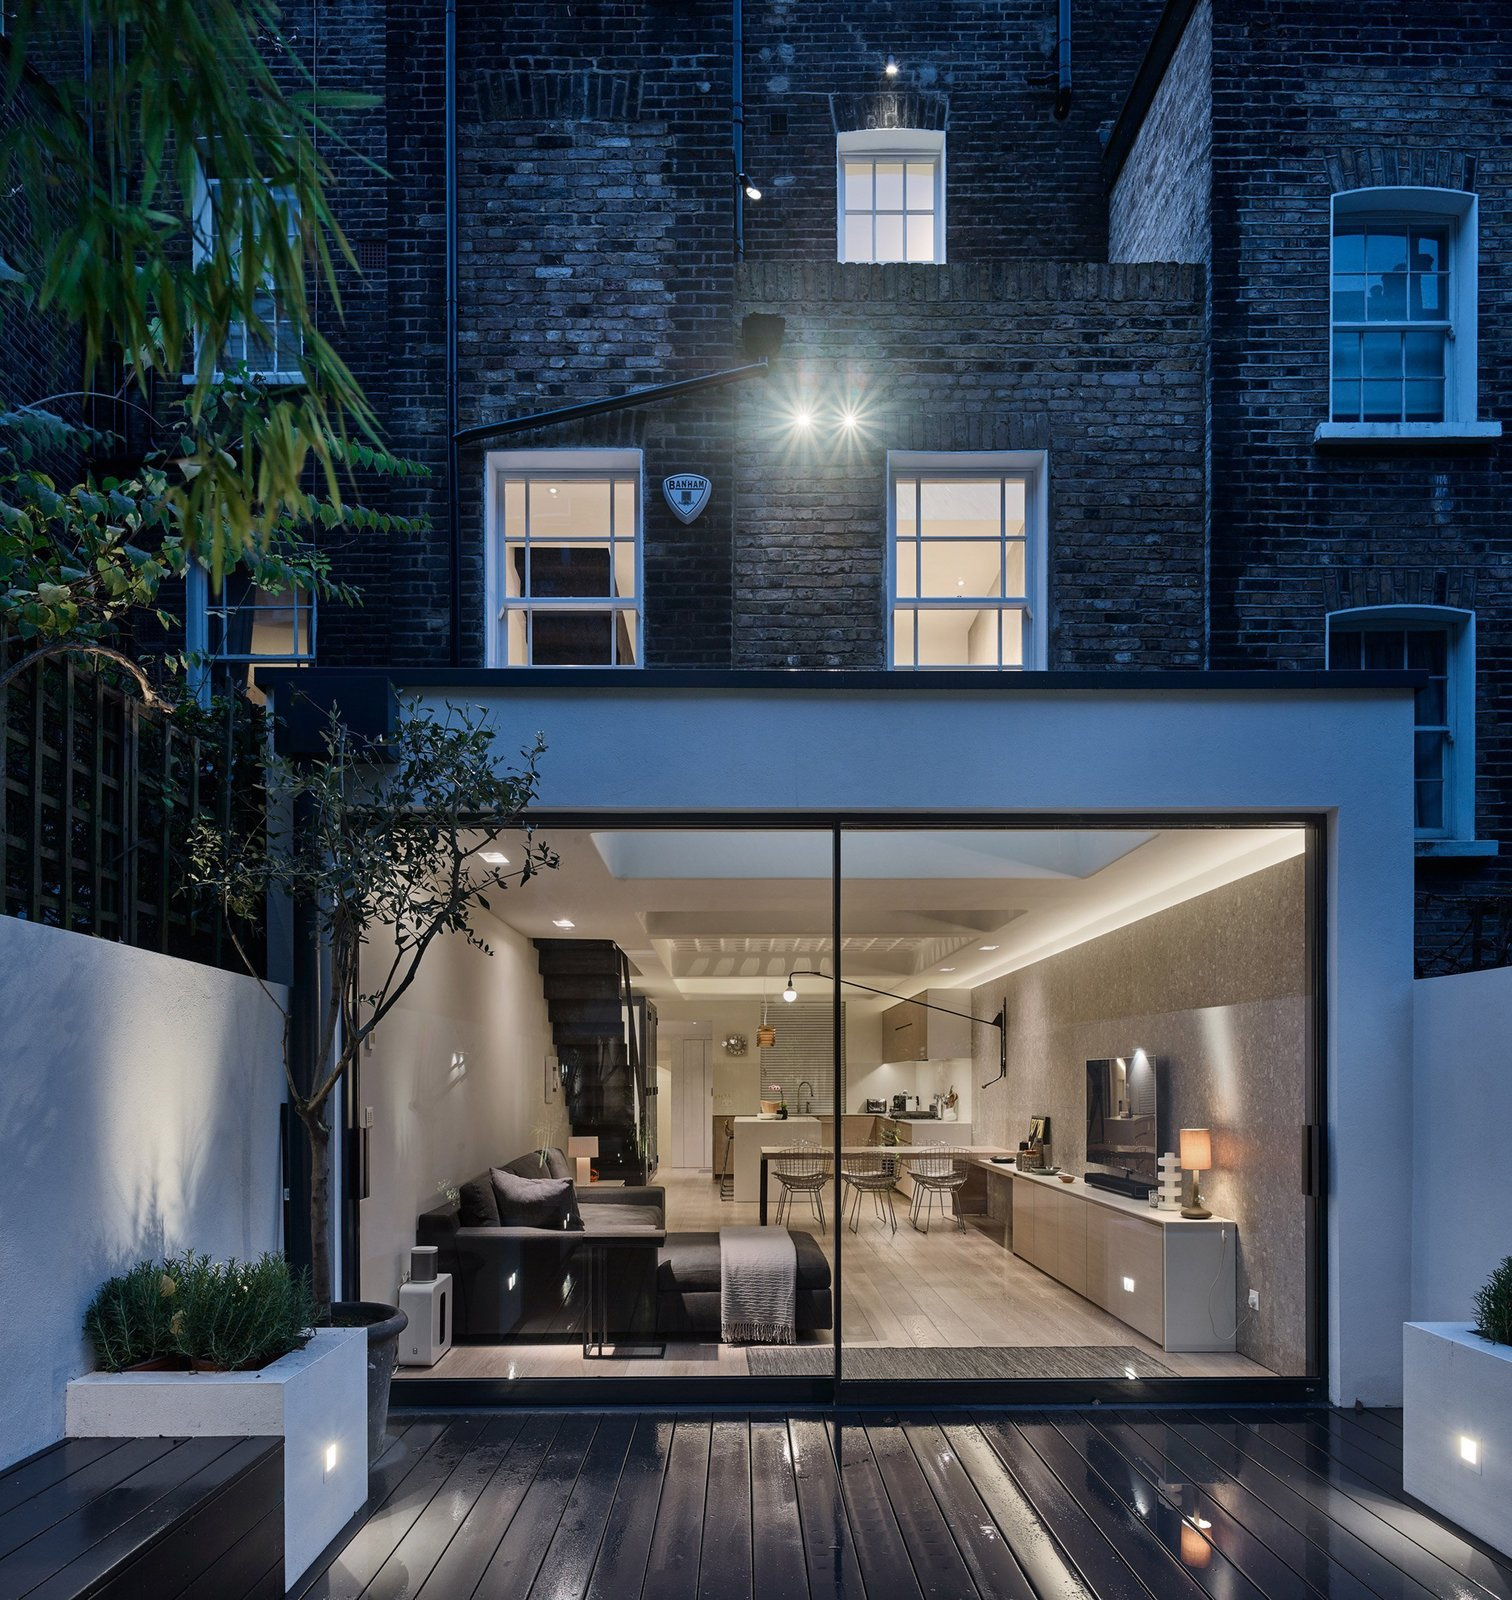 Transparent Perforated Circles Bring Light and Movement to This London Terrace House - Photo 6 of 12